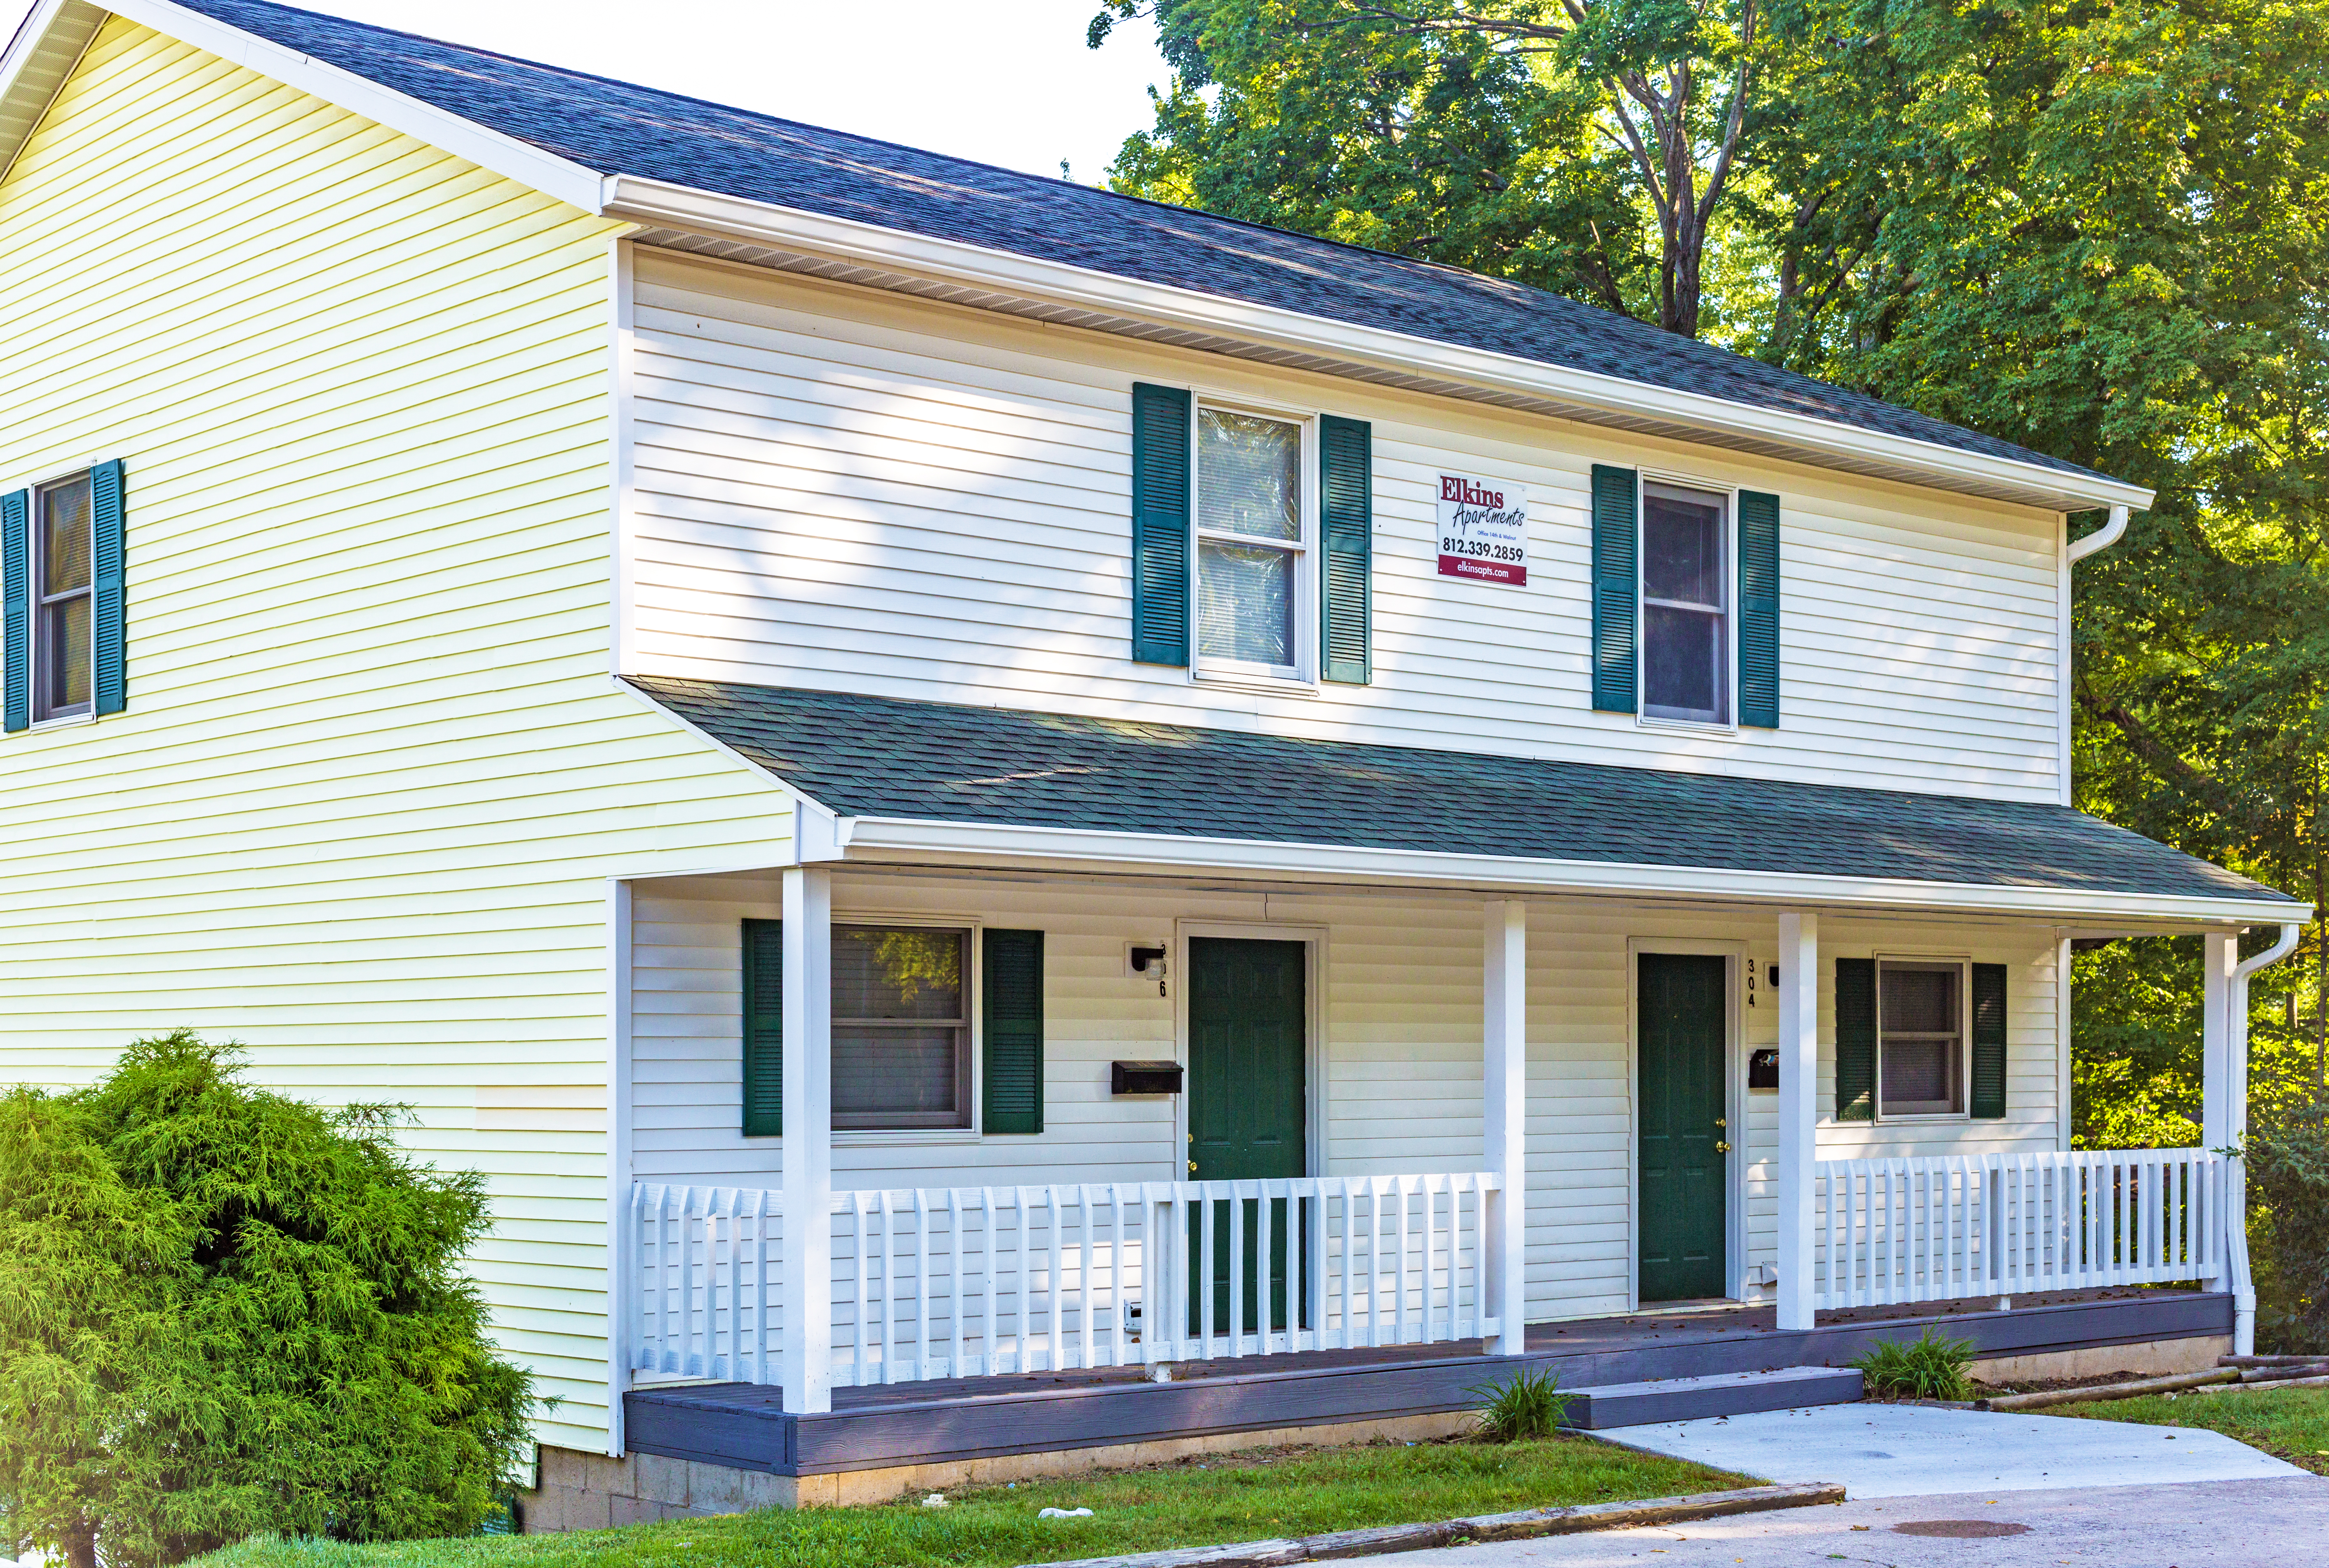 304 W 14th - 5 Br Townhomes Near Iu. Affordable! Nice.